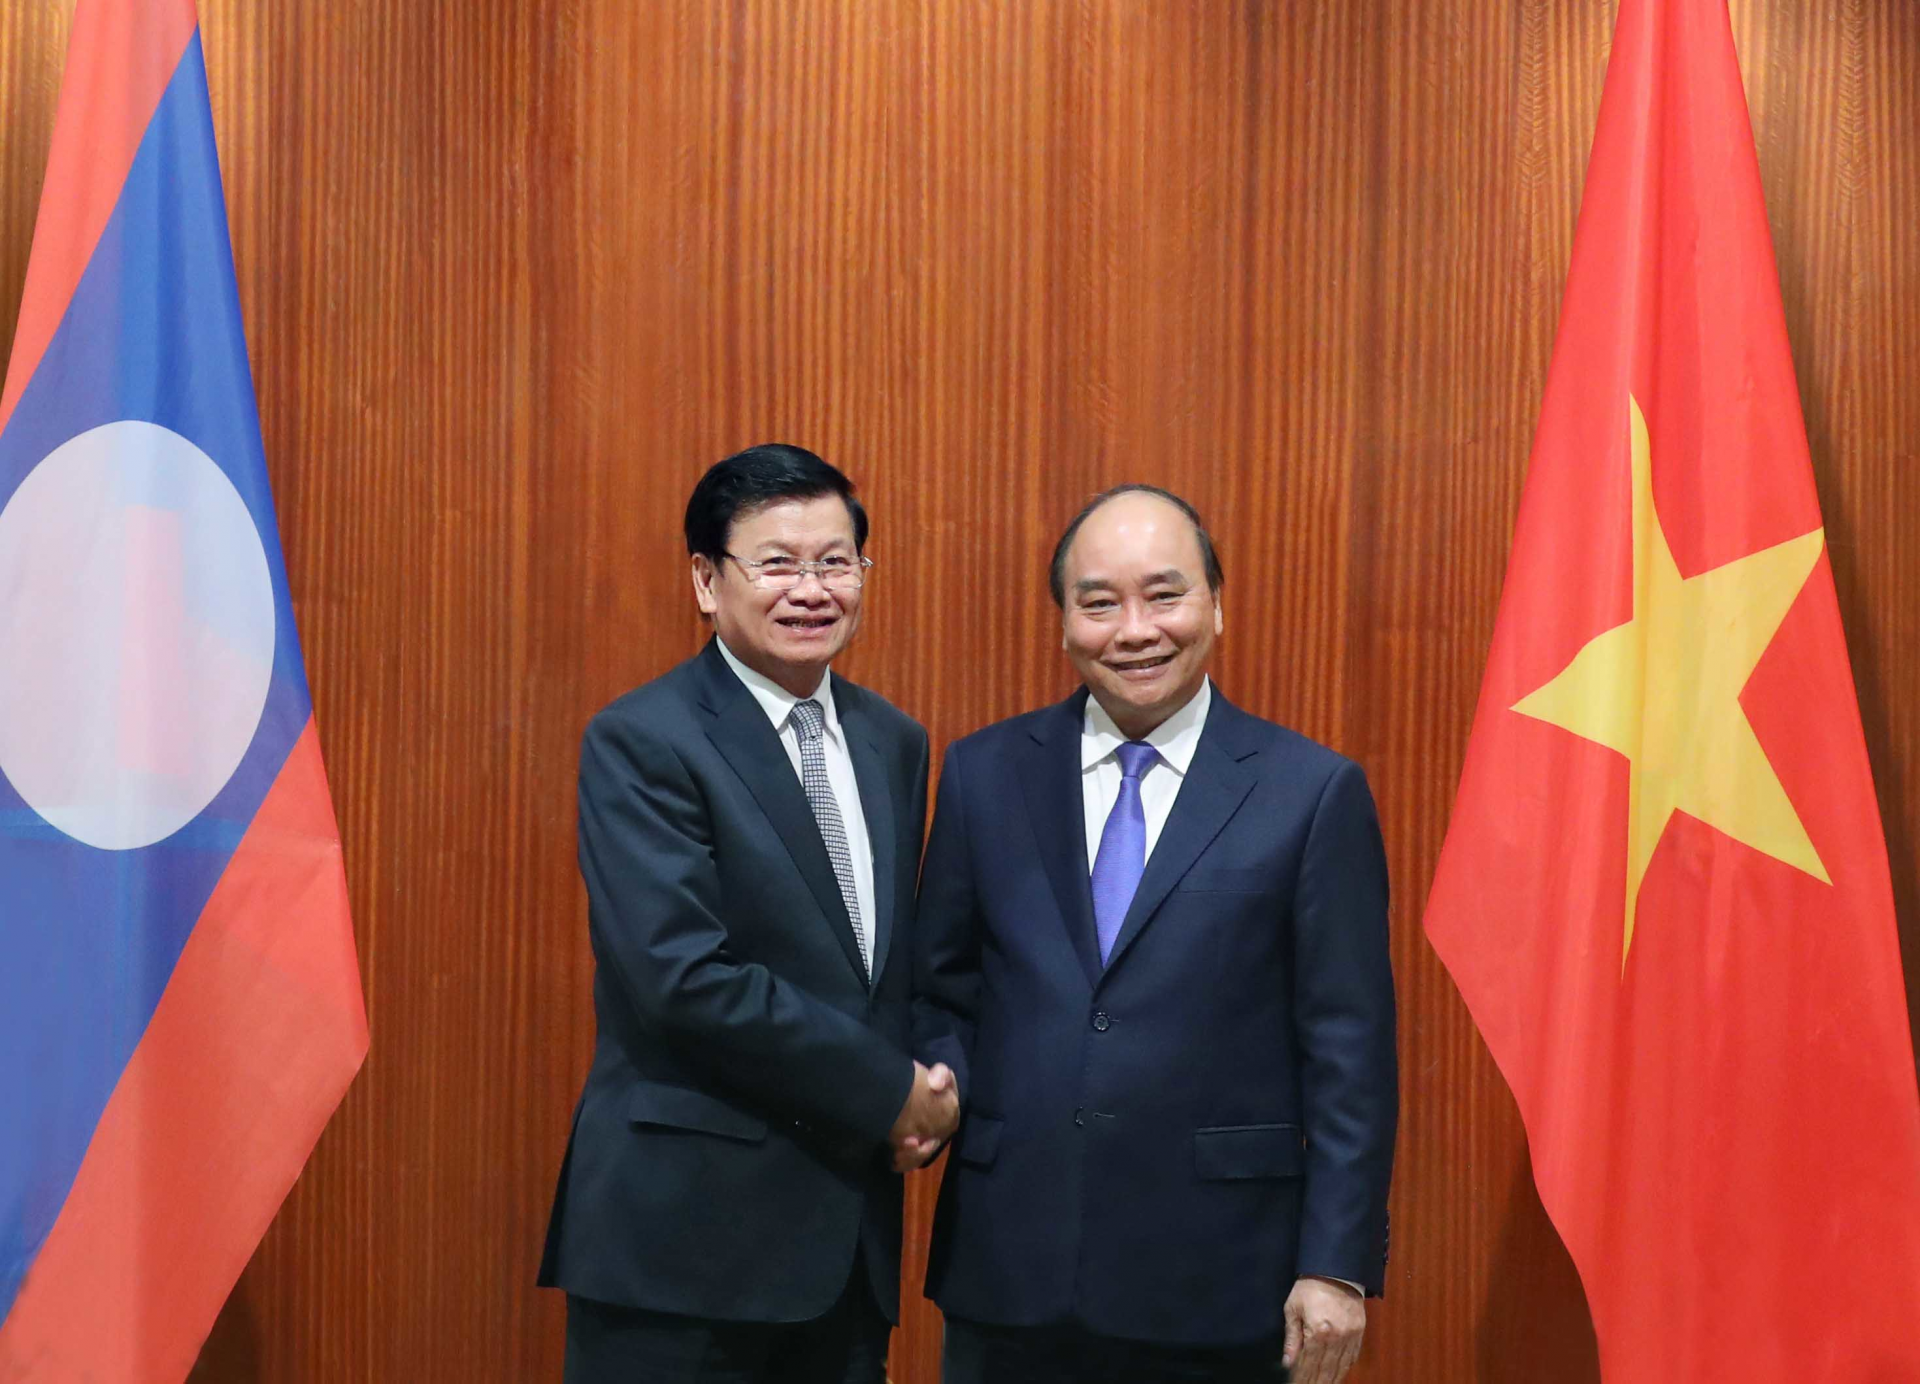 Covid-19 Updates in Vietnam (July 6): First high-level visit since COVID-19 outbreak